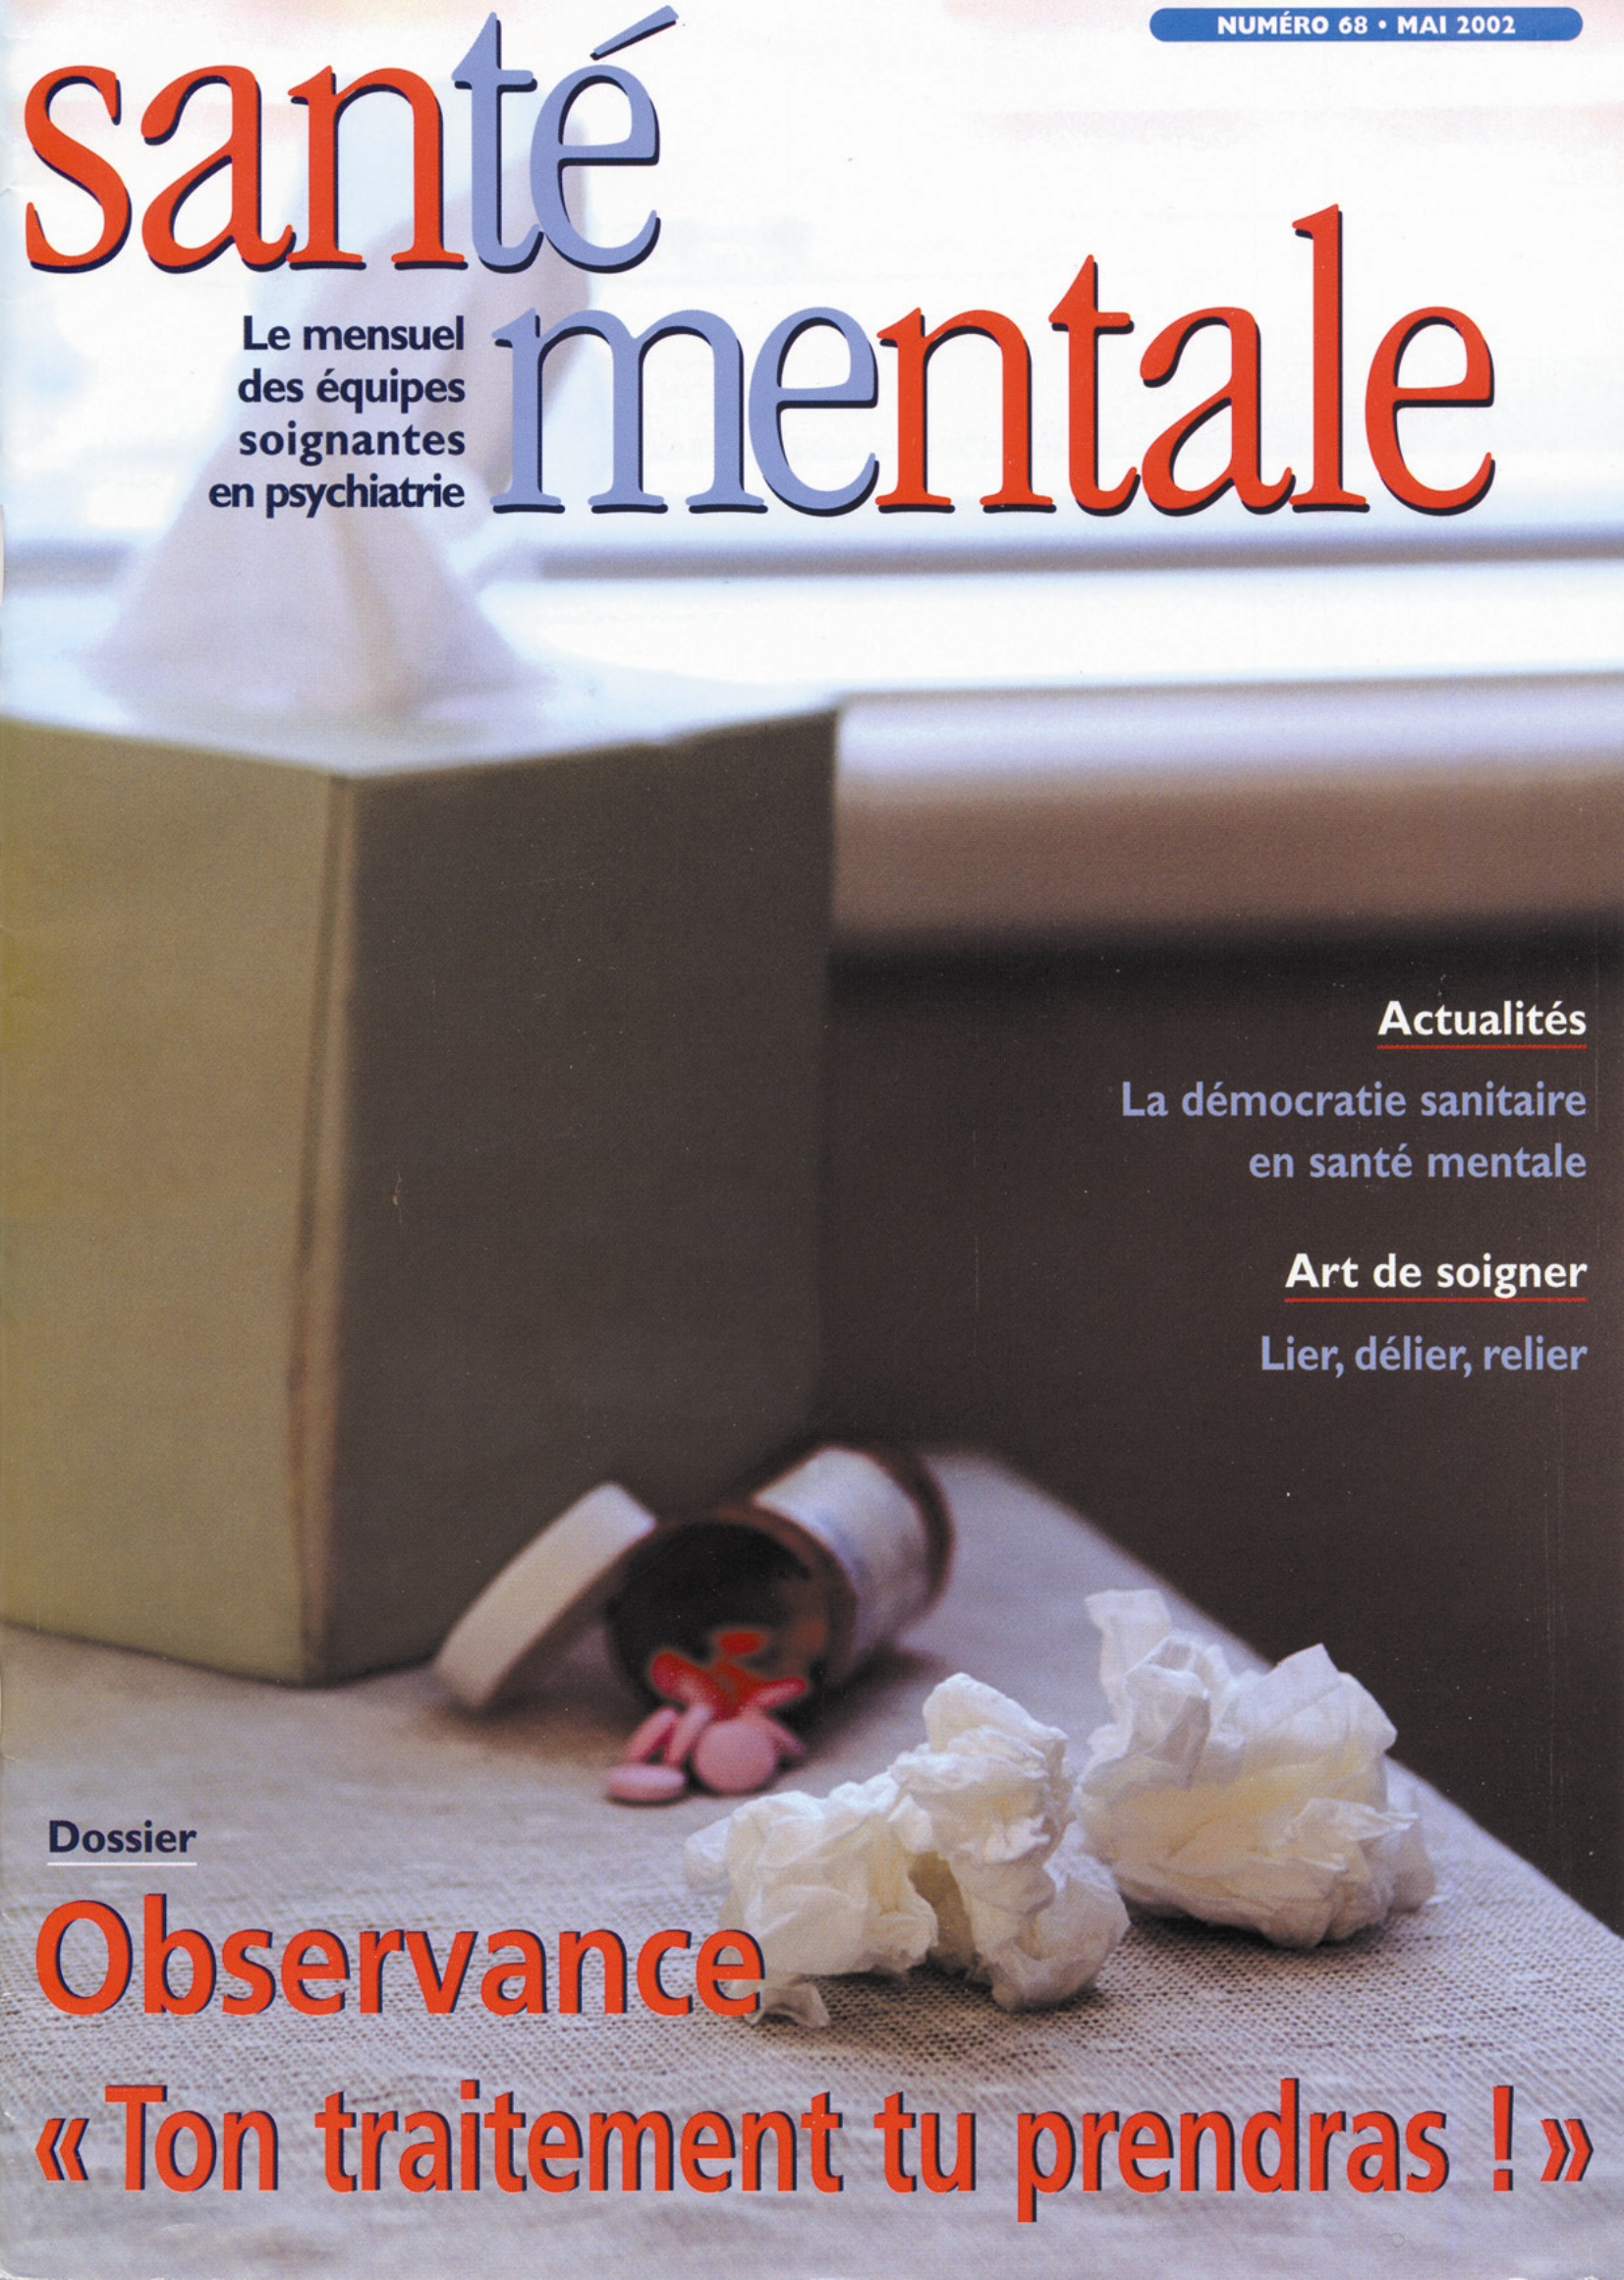 Couverture N°68 mai 2002